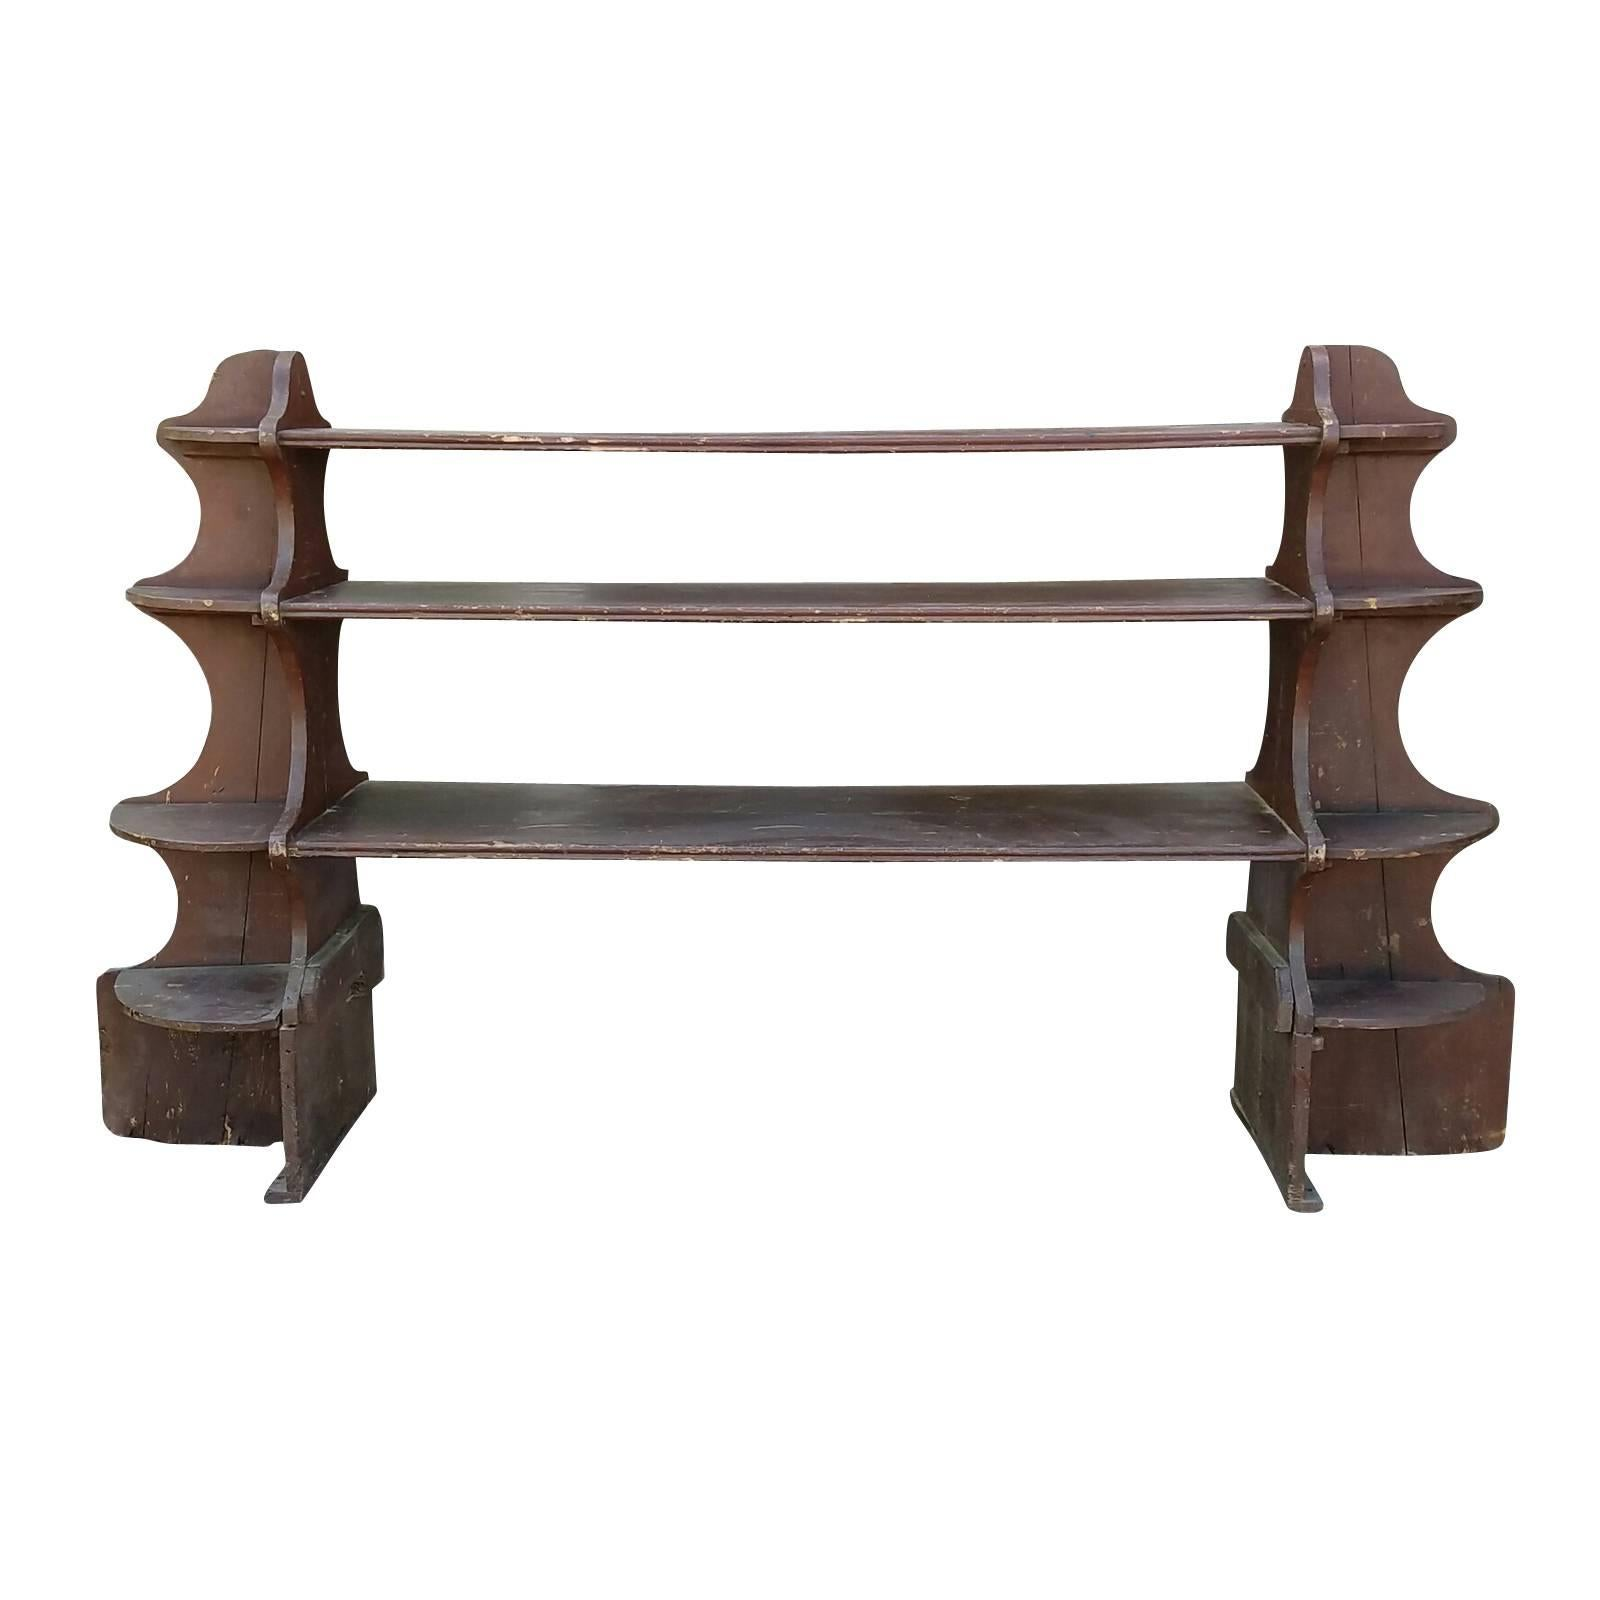 19th Century French Wooden Display Shelf